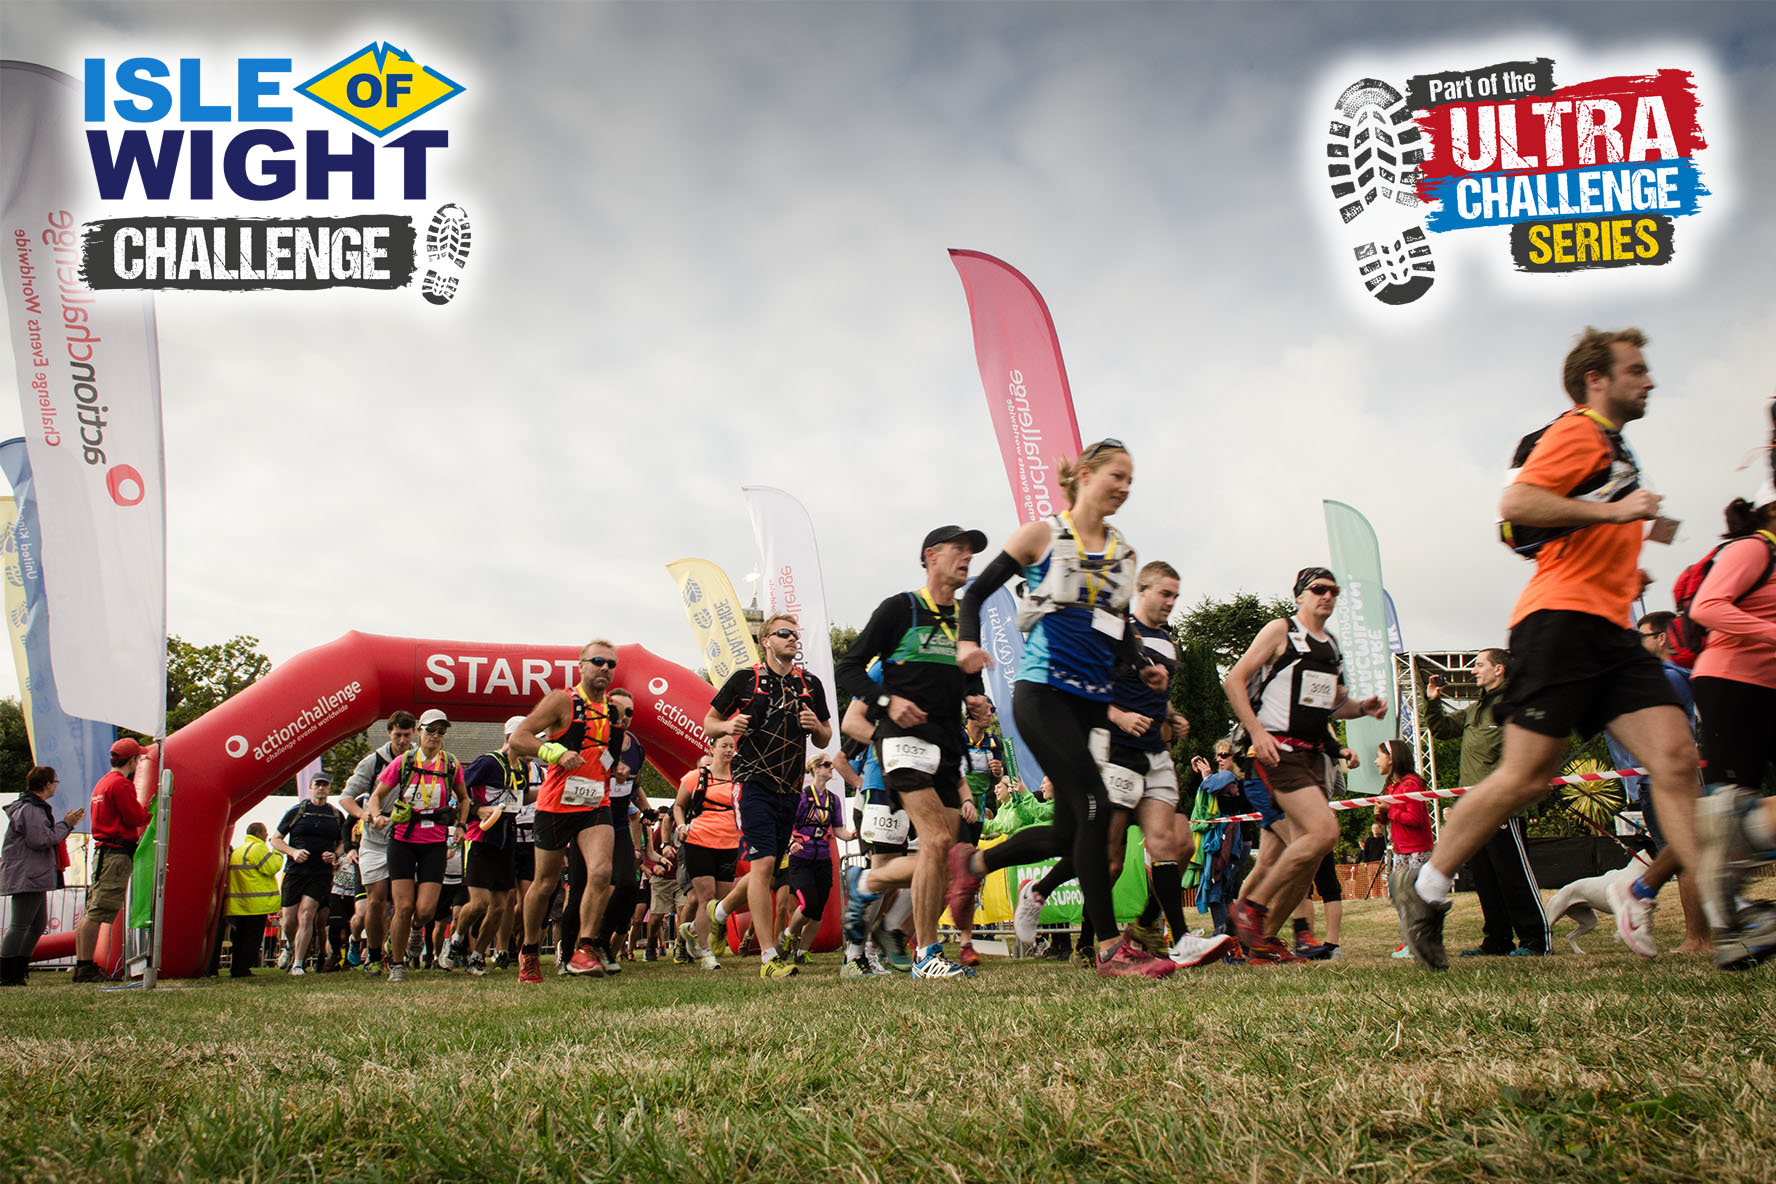 Isle of Wight Ultra Run